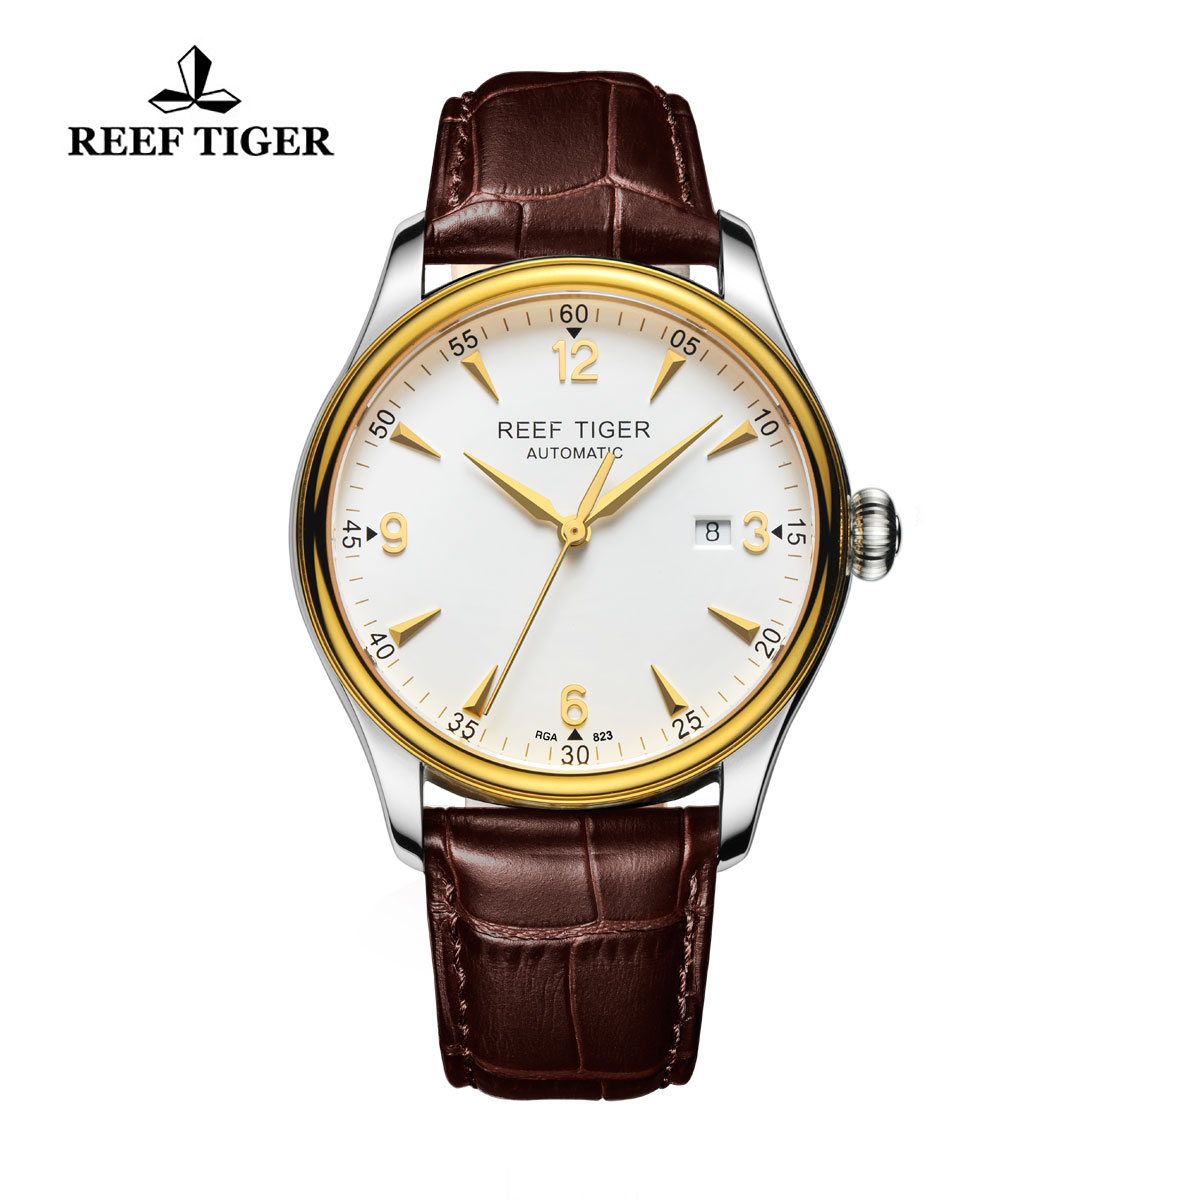 Reef Tiger Heritage Dress Watch Automatic White Dial Calfskin Leather Strap RGA823-TWB